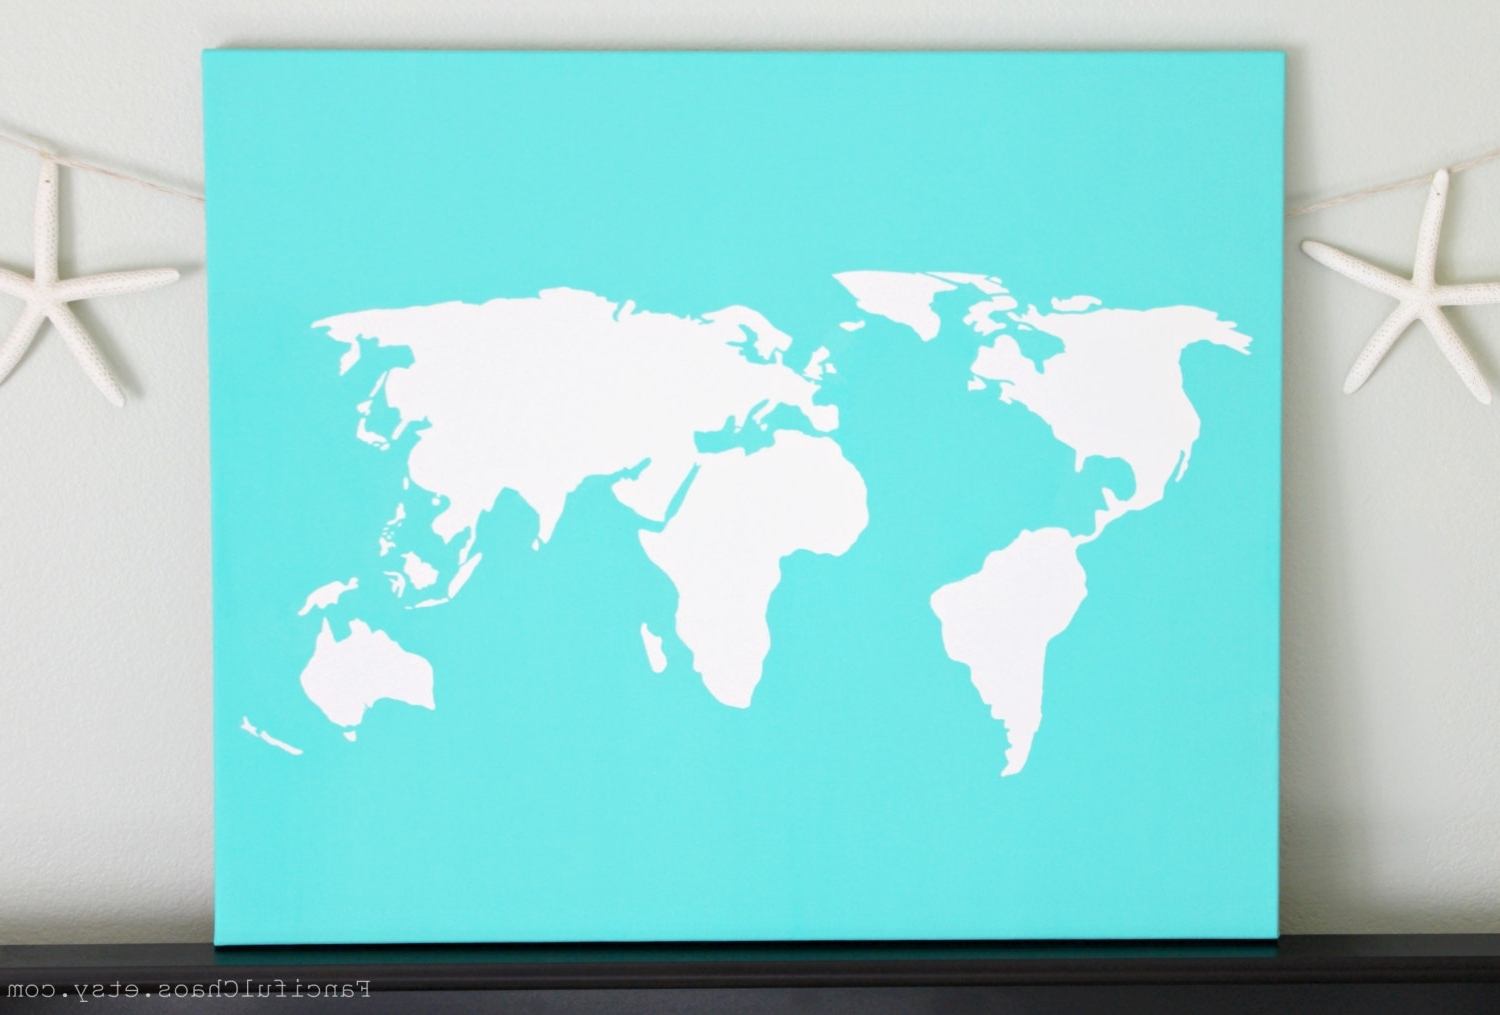 Diy World Map Wall Art Within Well Known Il Fullxfull 540289865 6G0P Jpg Version 0 For Diy World Map Wall (View 5 of 15)